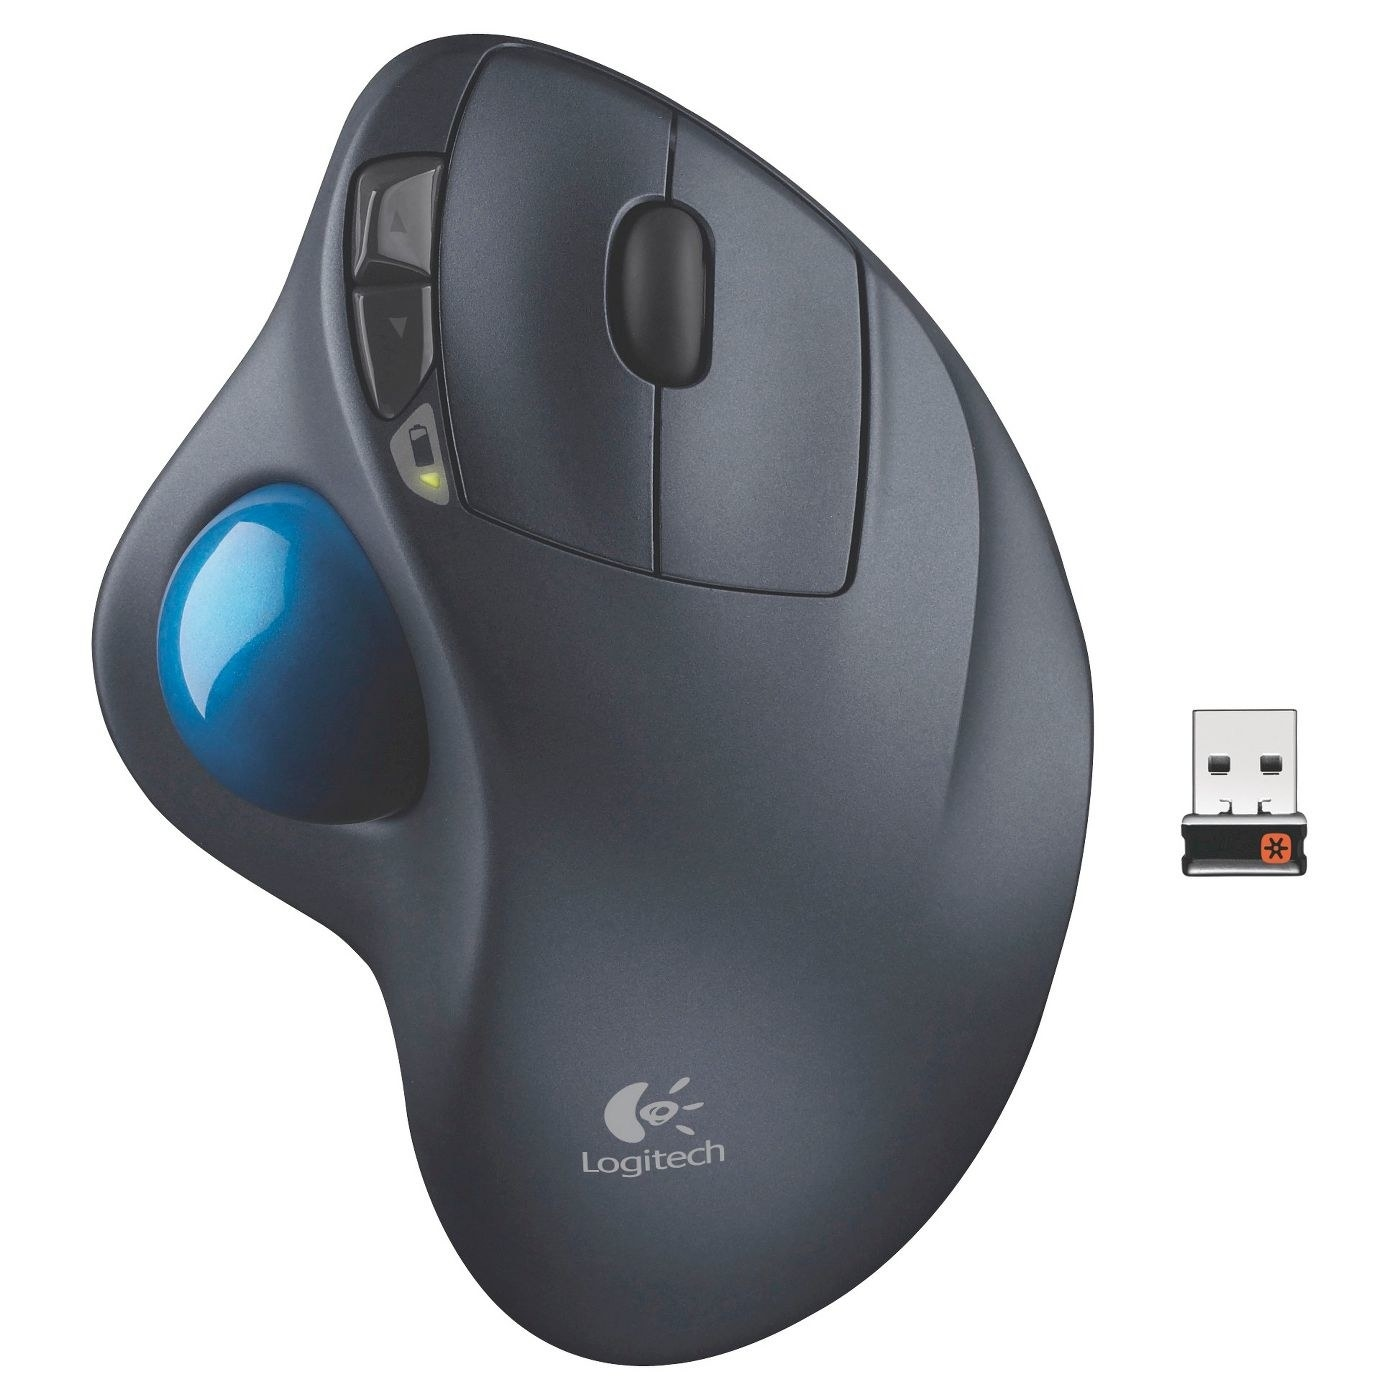 the black mouse with a blue trackball attached to the side